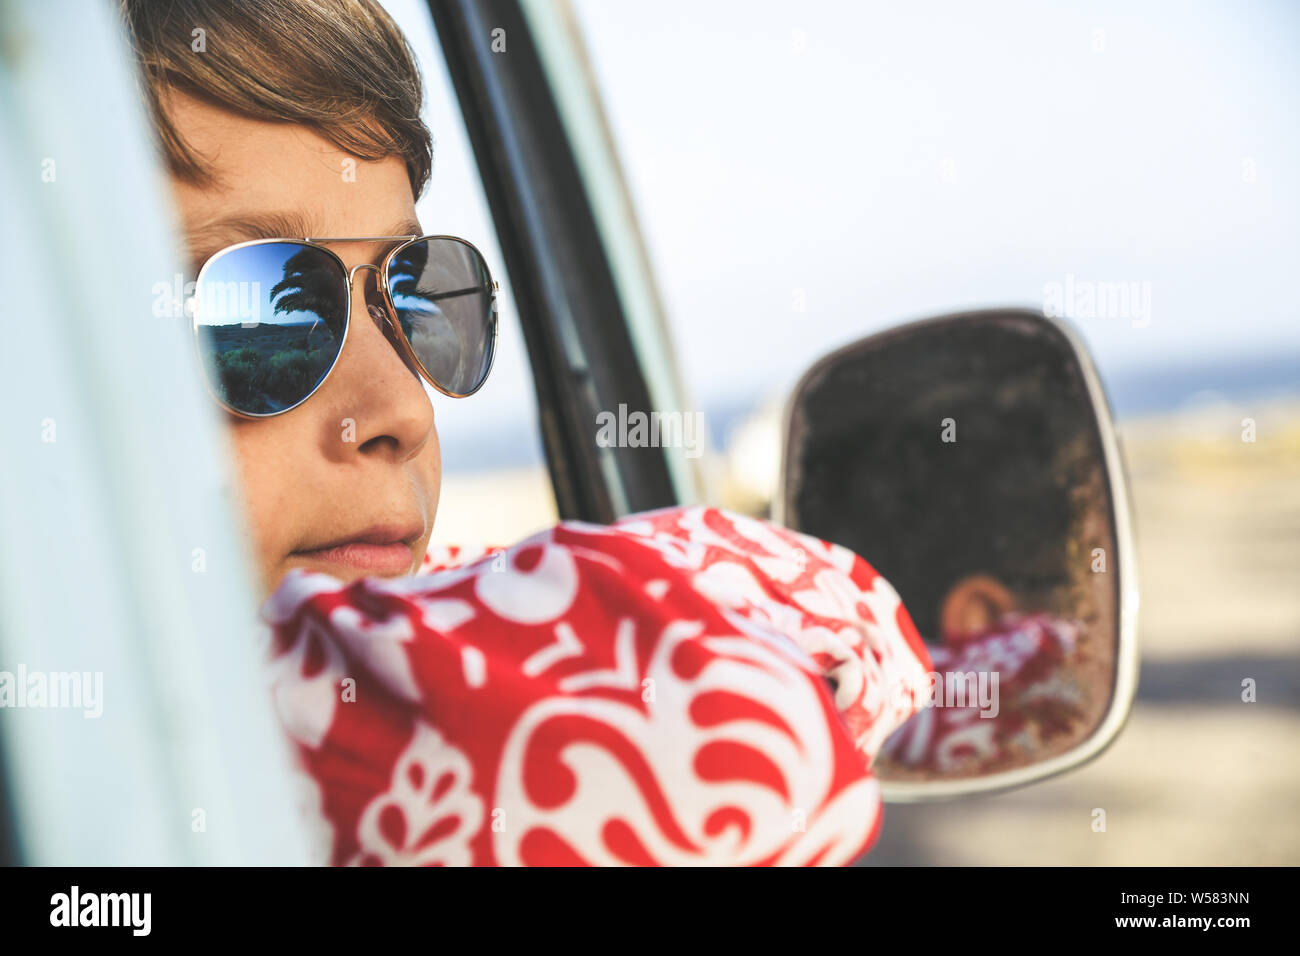 Handsome teenage boy with sunglasses posing charming out the window of a vintage van dressed as a flower hippie child. Concept of freedom and lighthea Stock Photo